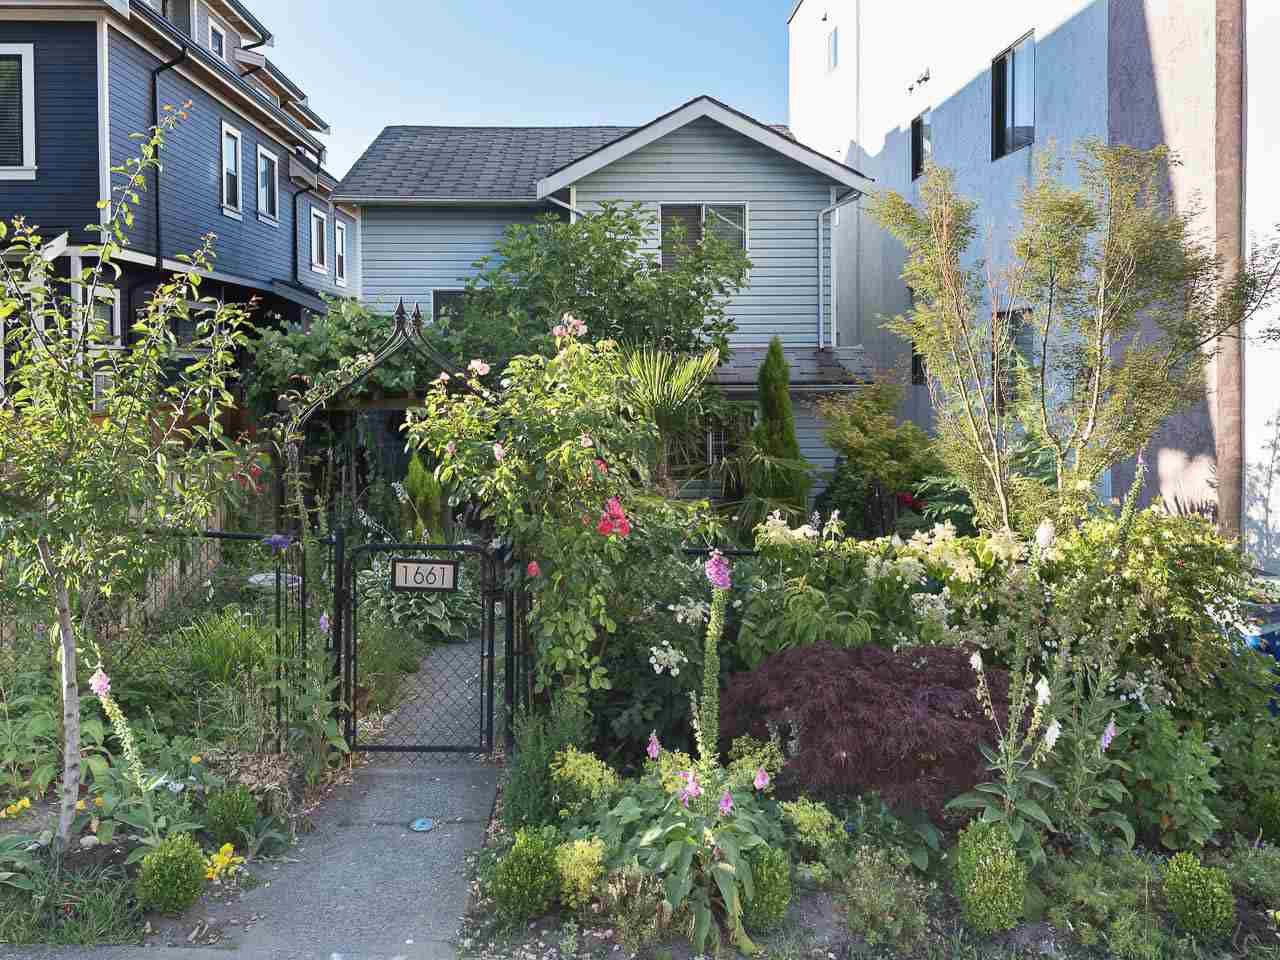 Main Photo: 1663 E 14TH Avenue in Vancouver: Grandview VE House 1/2 Duplex for sale (Vancouver East)  : MLS®# R2201048